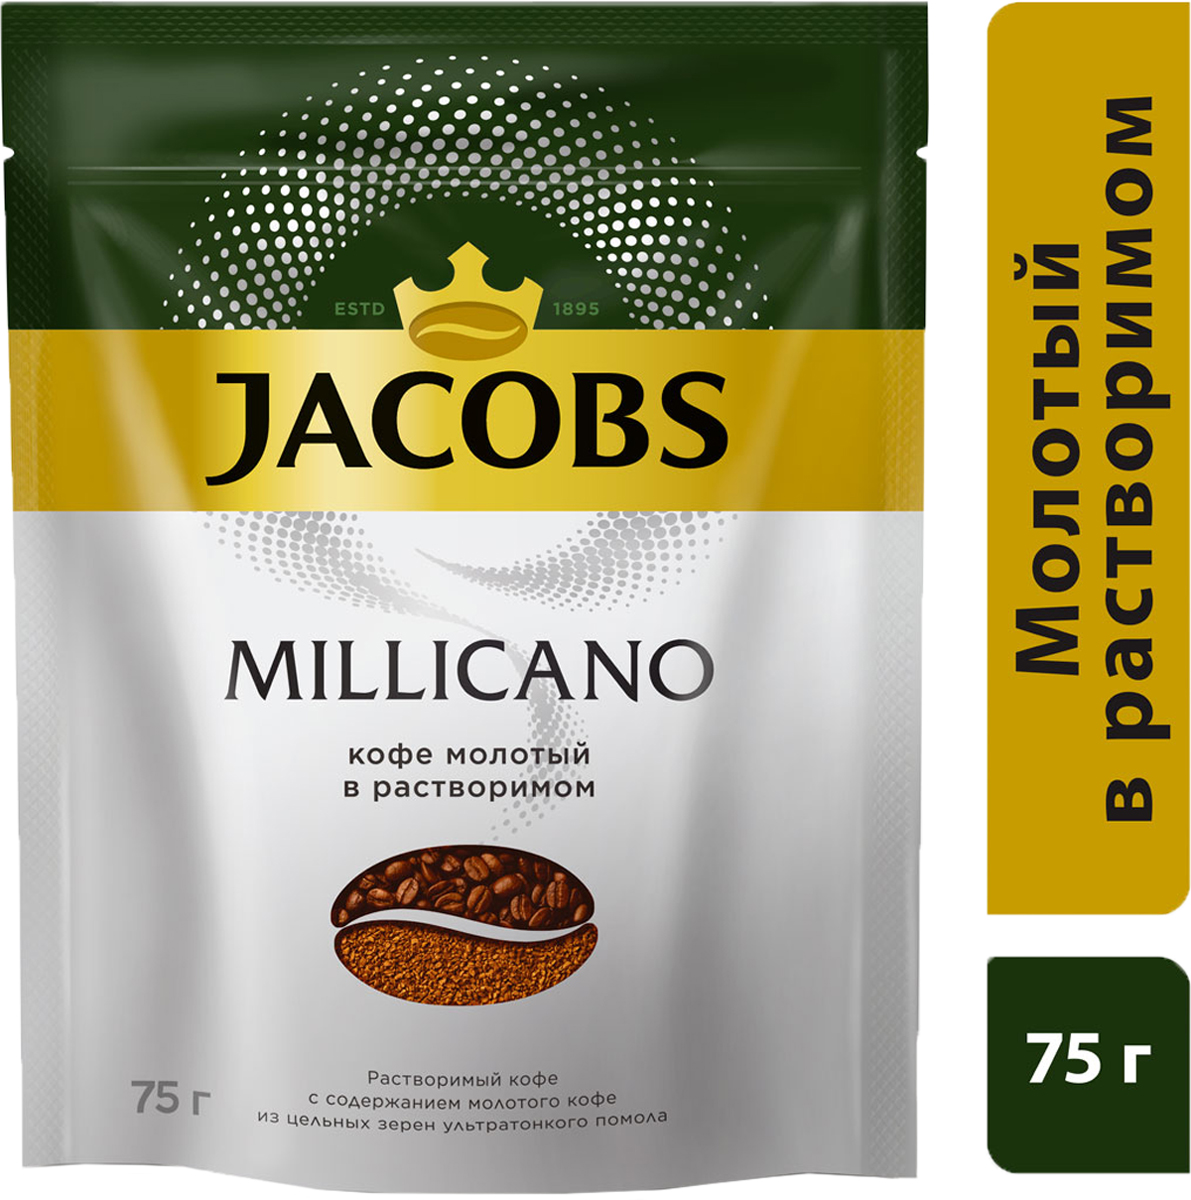 Jacobs Monarch Millicano кофе растворимый, 75 г (пакет) jacobs monarch кофе молотый 70 г